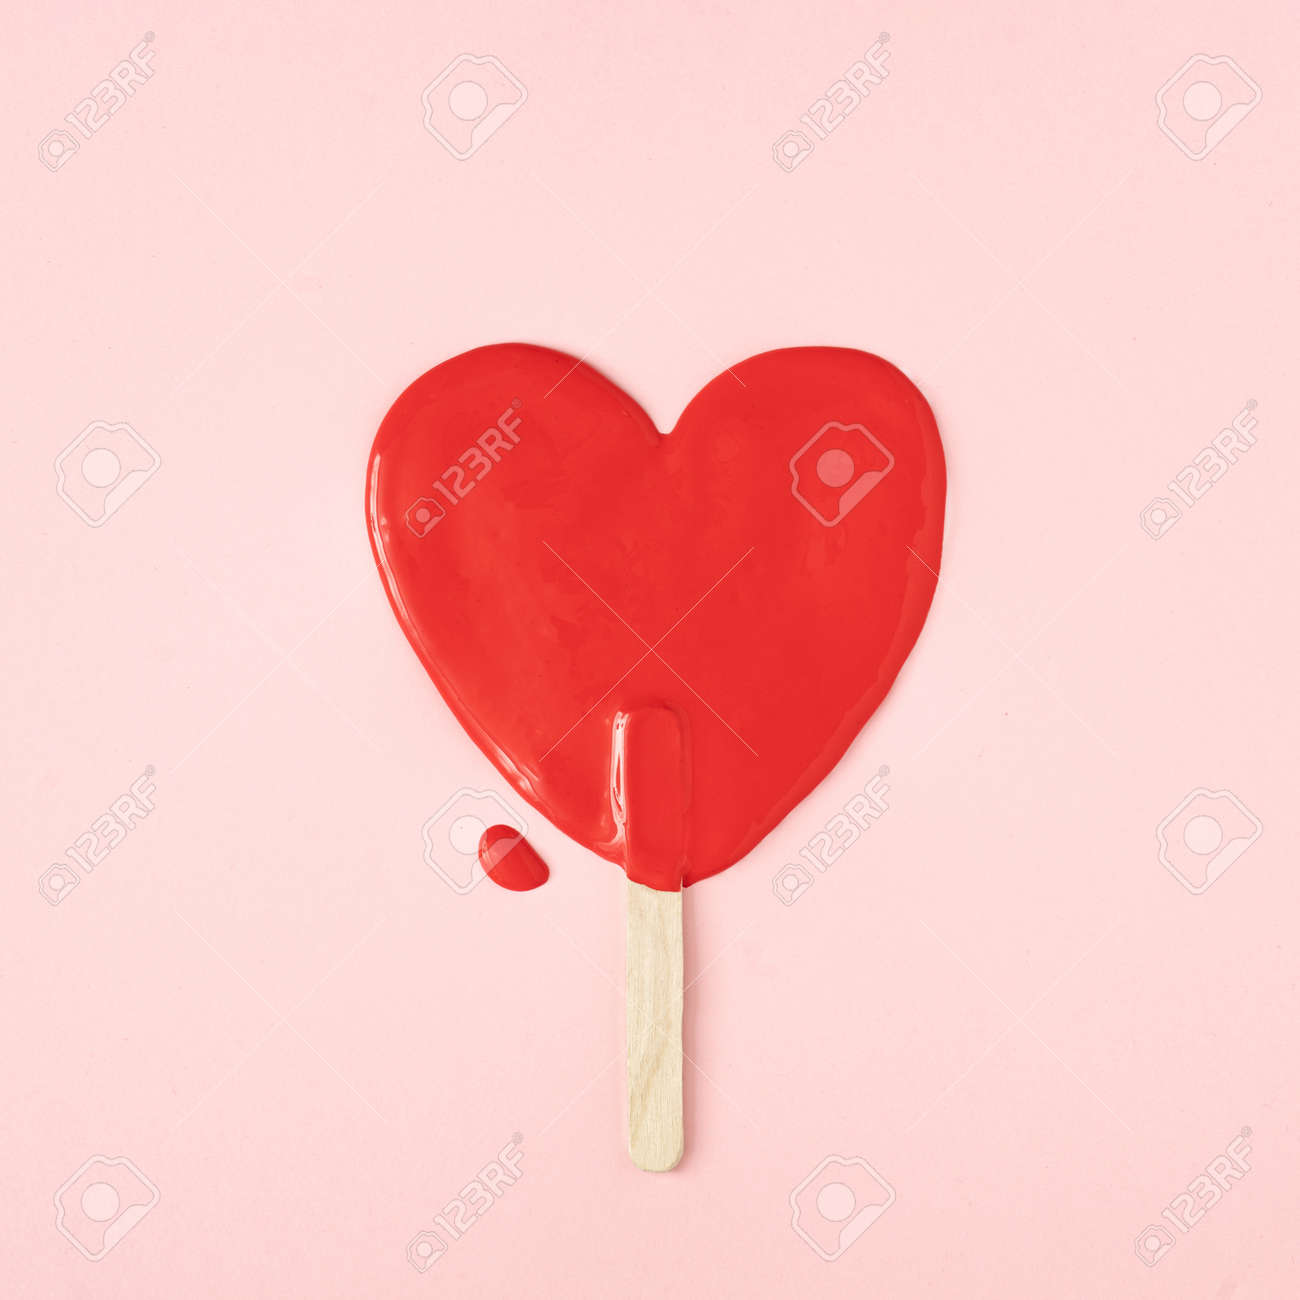 Melted icecream in shape of a heart. Minimal Valentines or love concept. Flat lay. - 163287346